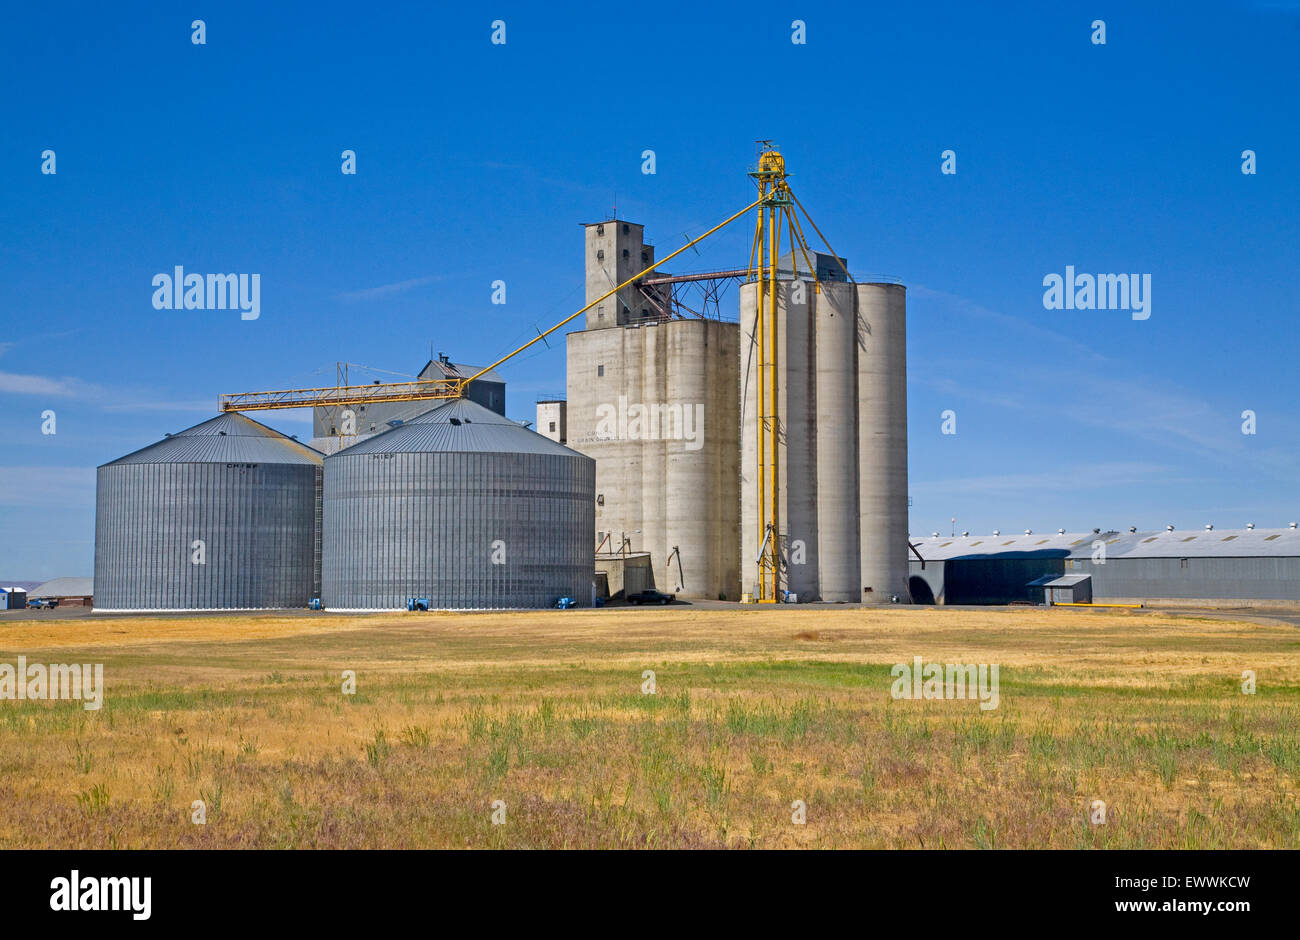 A giant storage ilo used to store wheat in condon, Oregon. - Stock Image